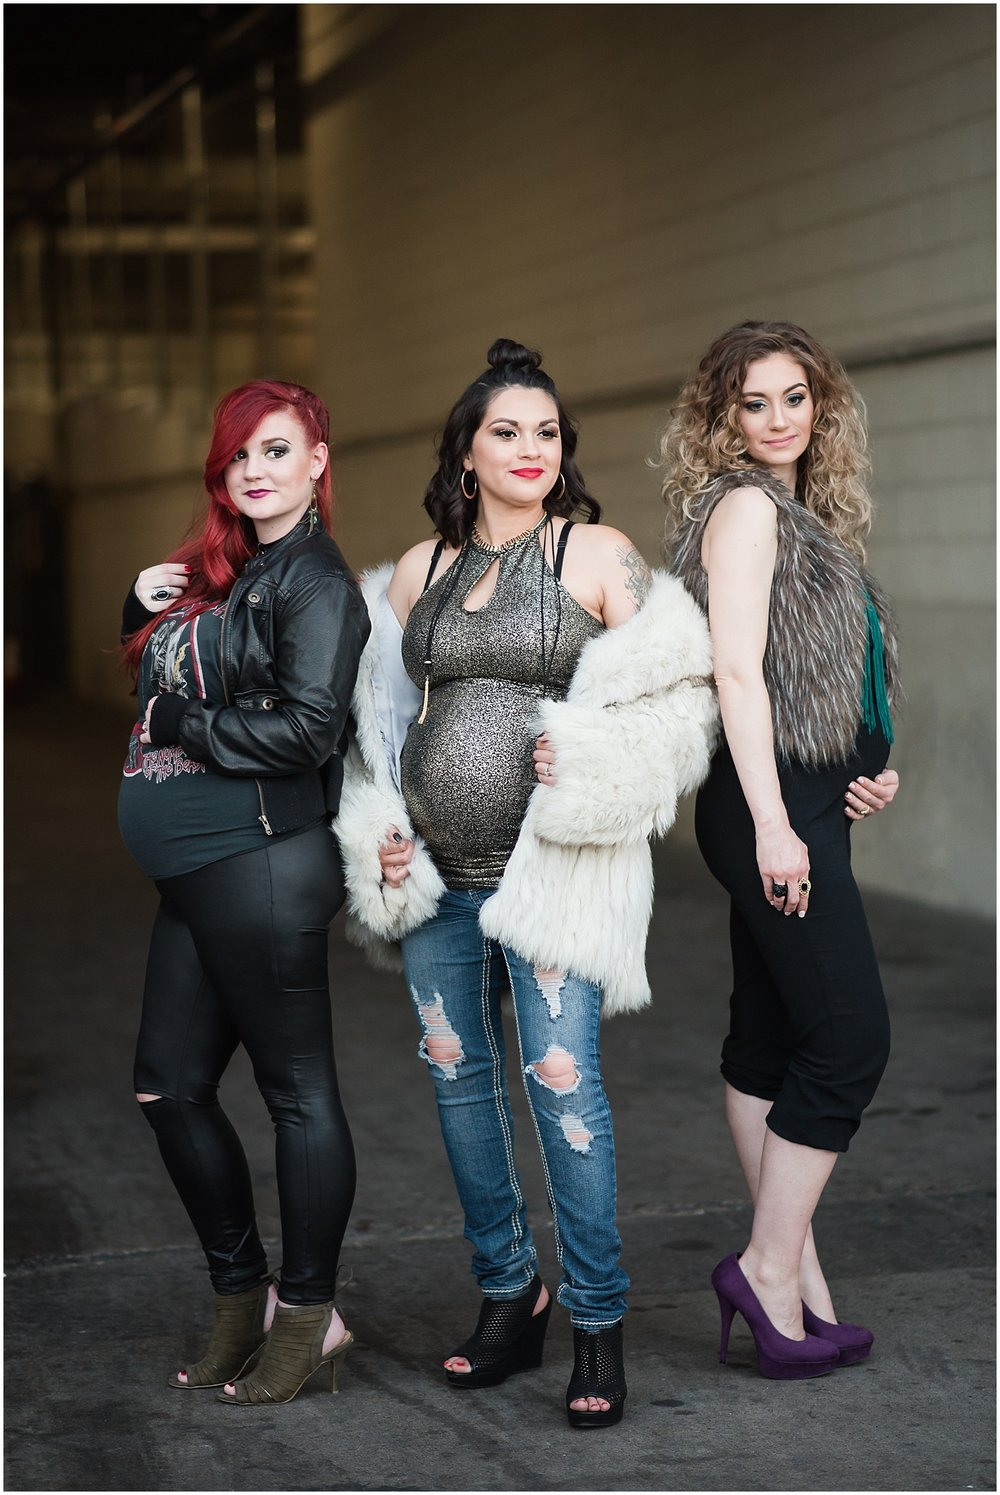 Maternity session with beautiful mommy-to-bes at downtown Phoenix. Photo taken by Jade Min Photography.